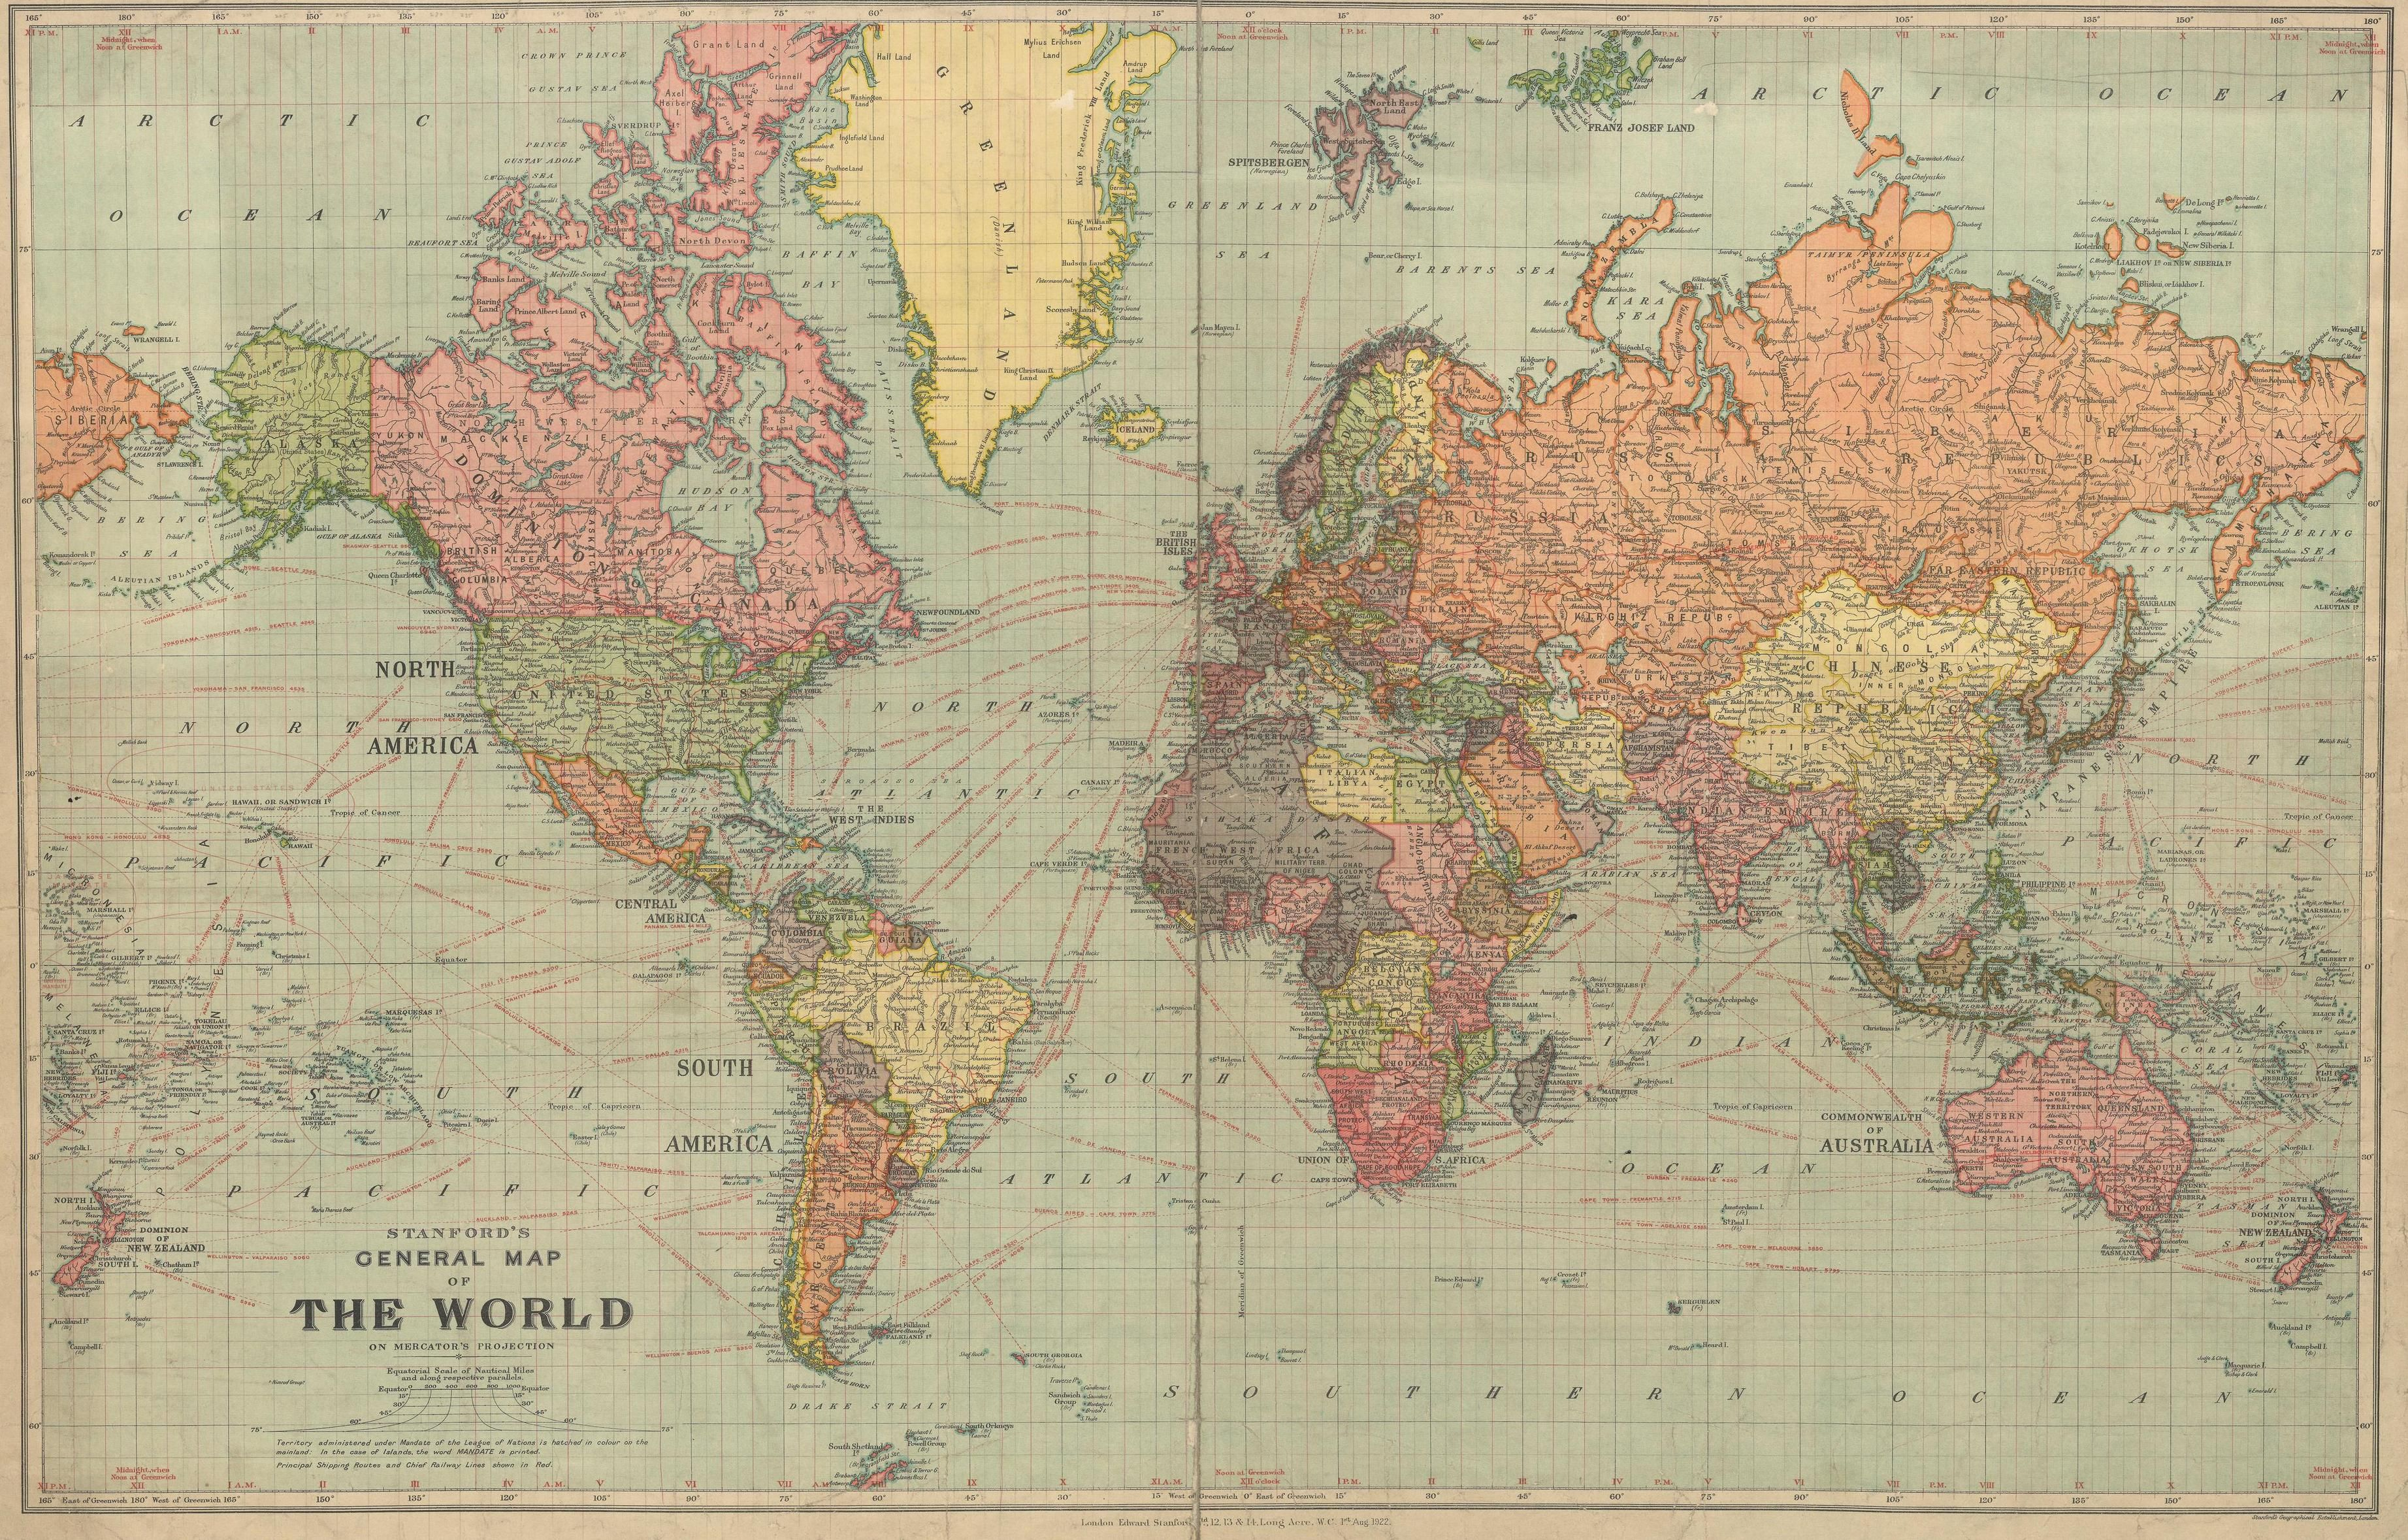 Ca 1920 stanfords general map of the world maps pinterest cavallini world map wrap x printed on cavallinis signature italian paper archival perfect for wrapping as posters framing and other creative endeav gumiabroncs Gallery